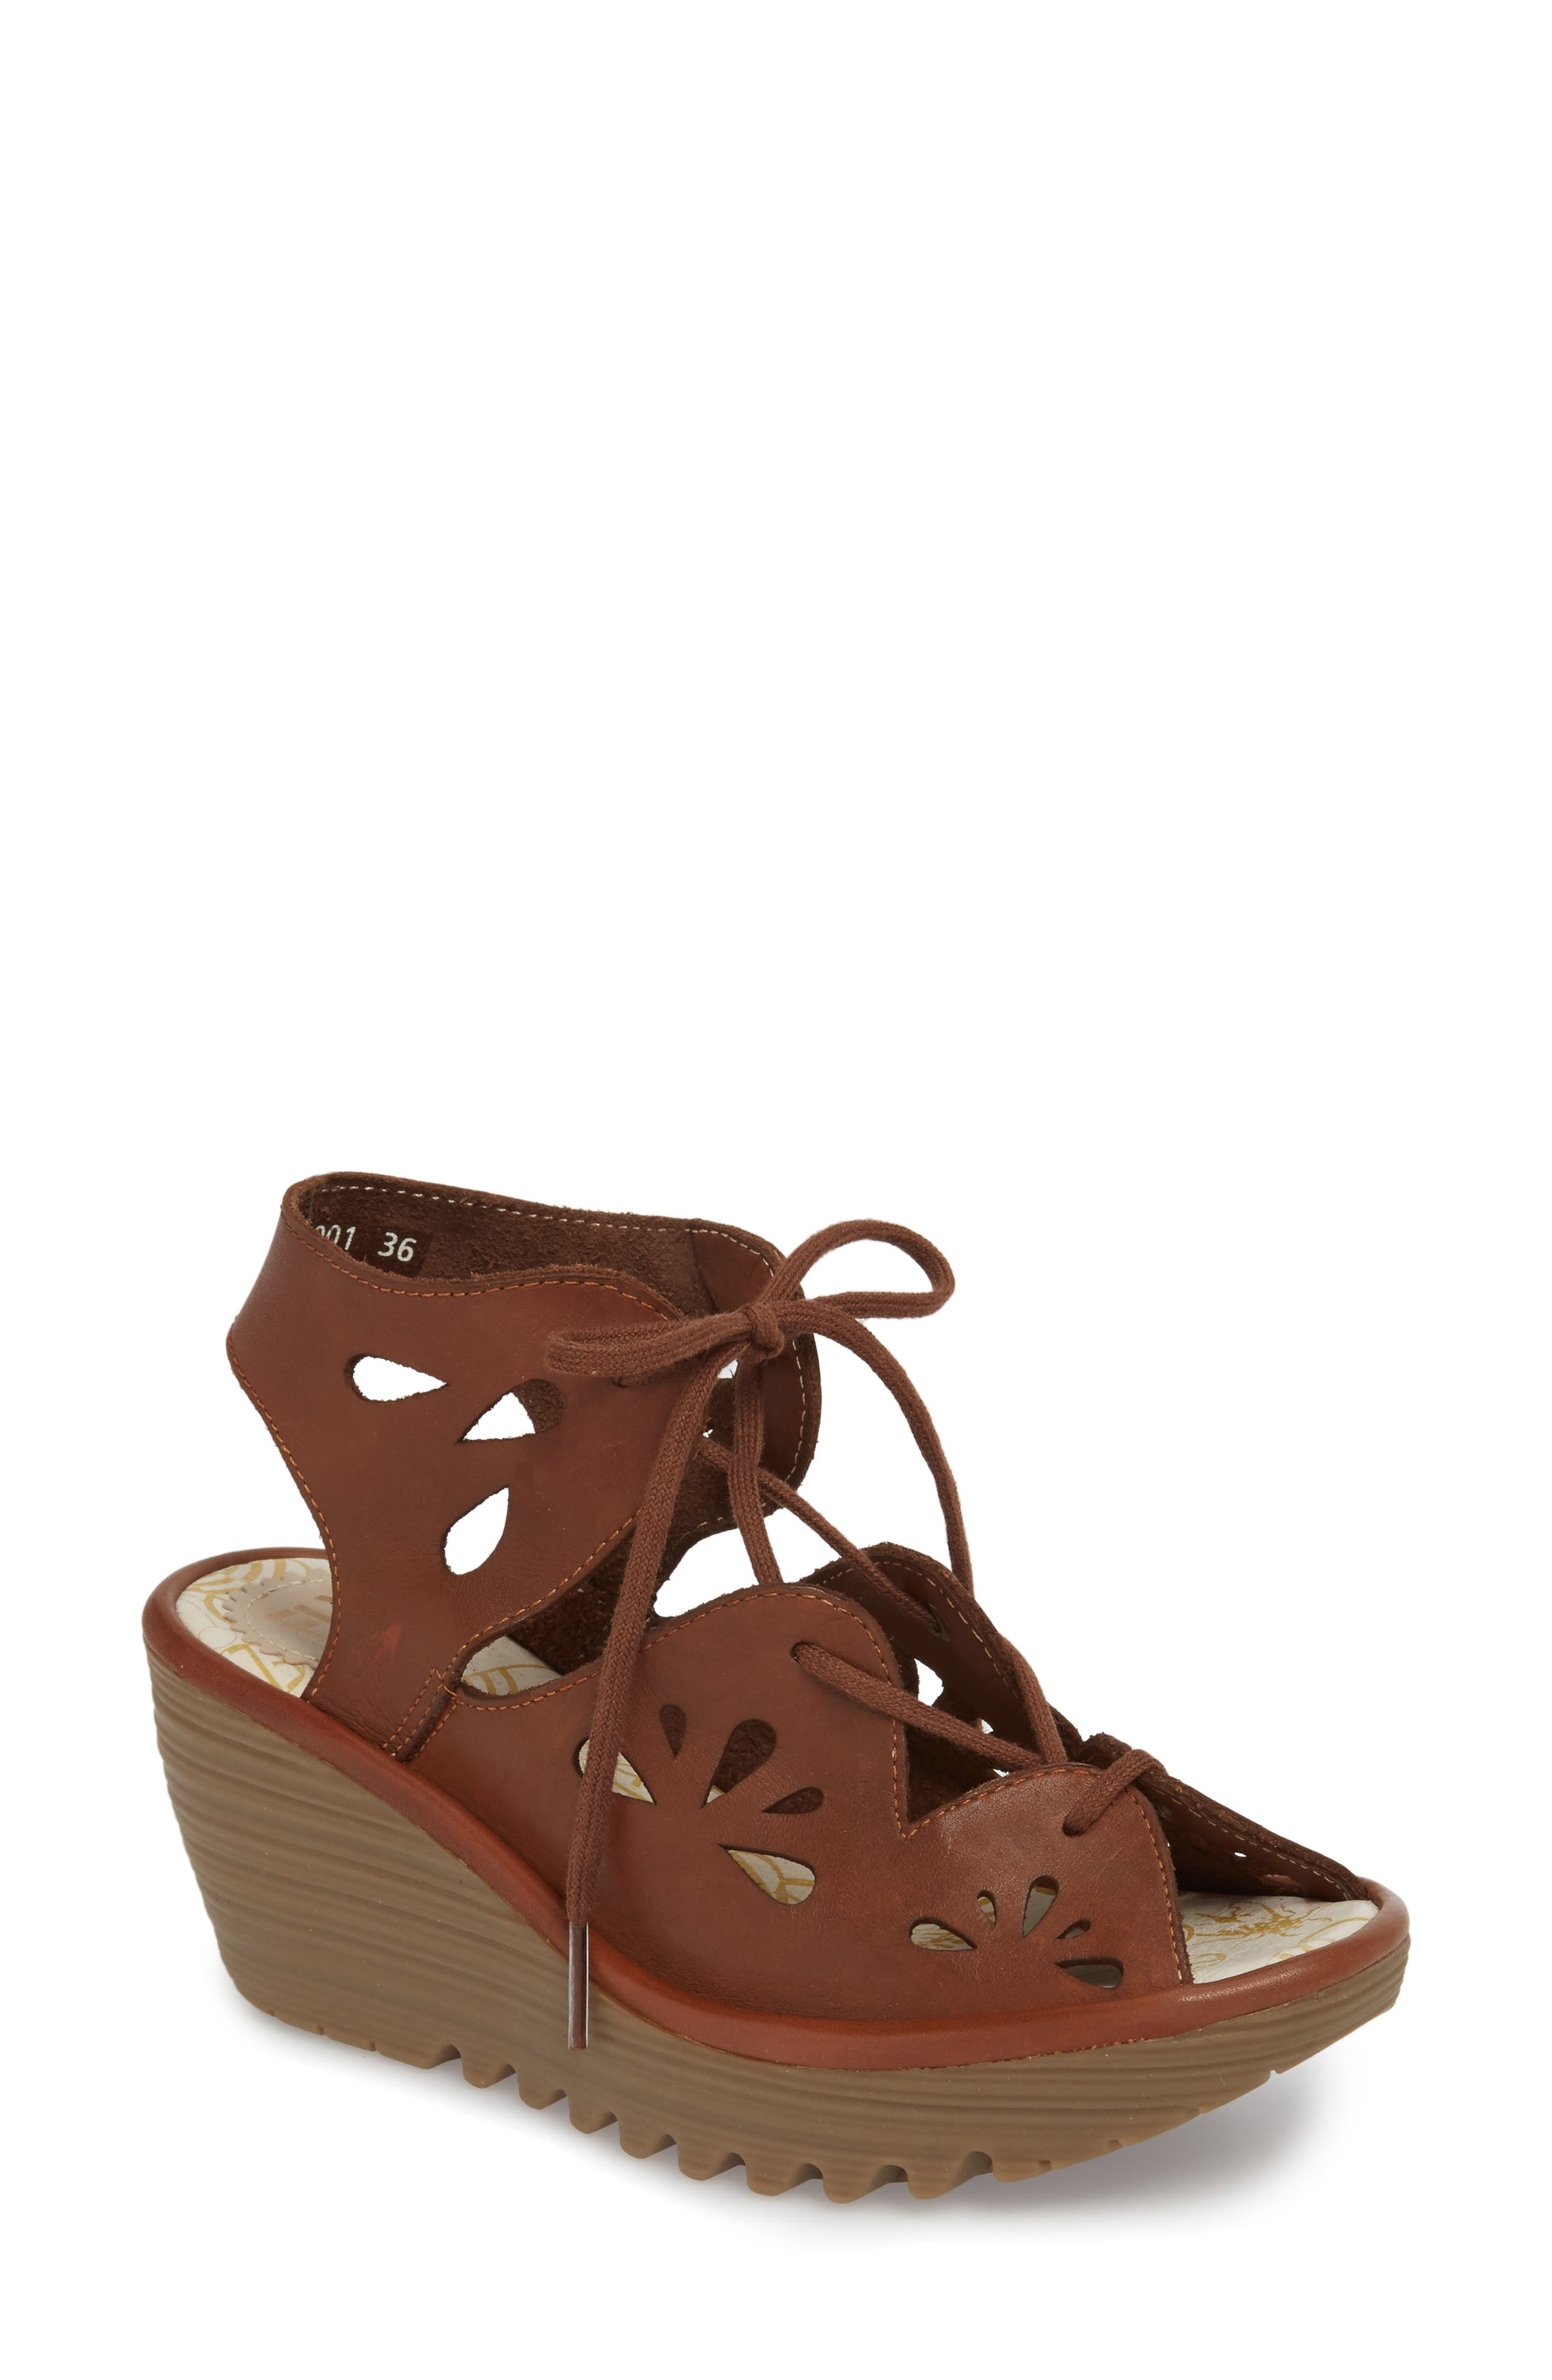 Main Image - Fly London Yote Sandal (Women)